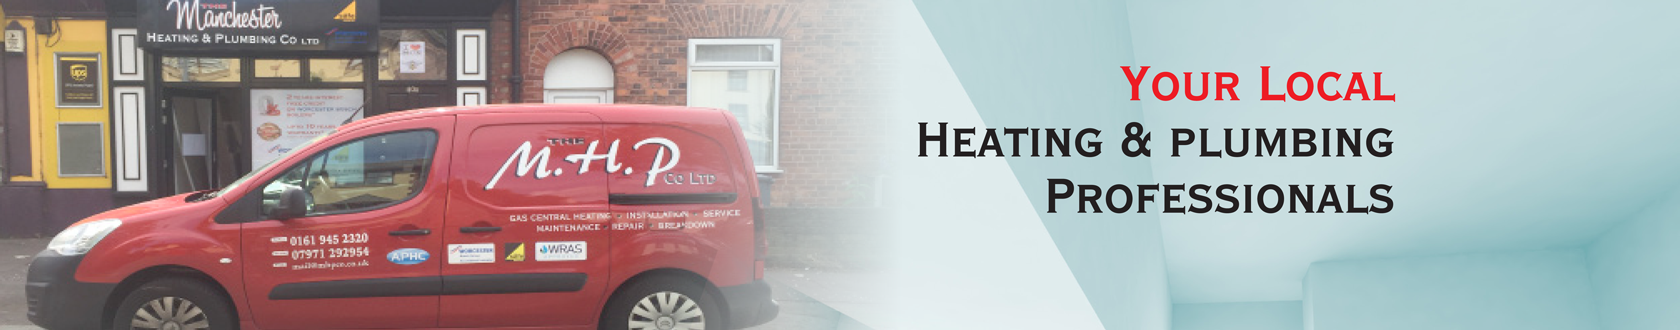 Heating and Plumbing Manchester